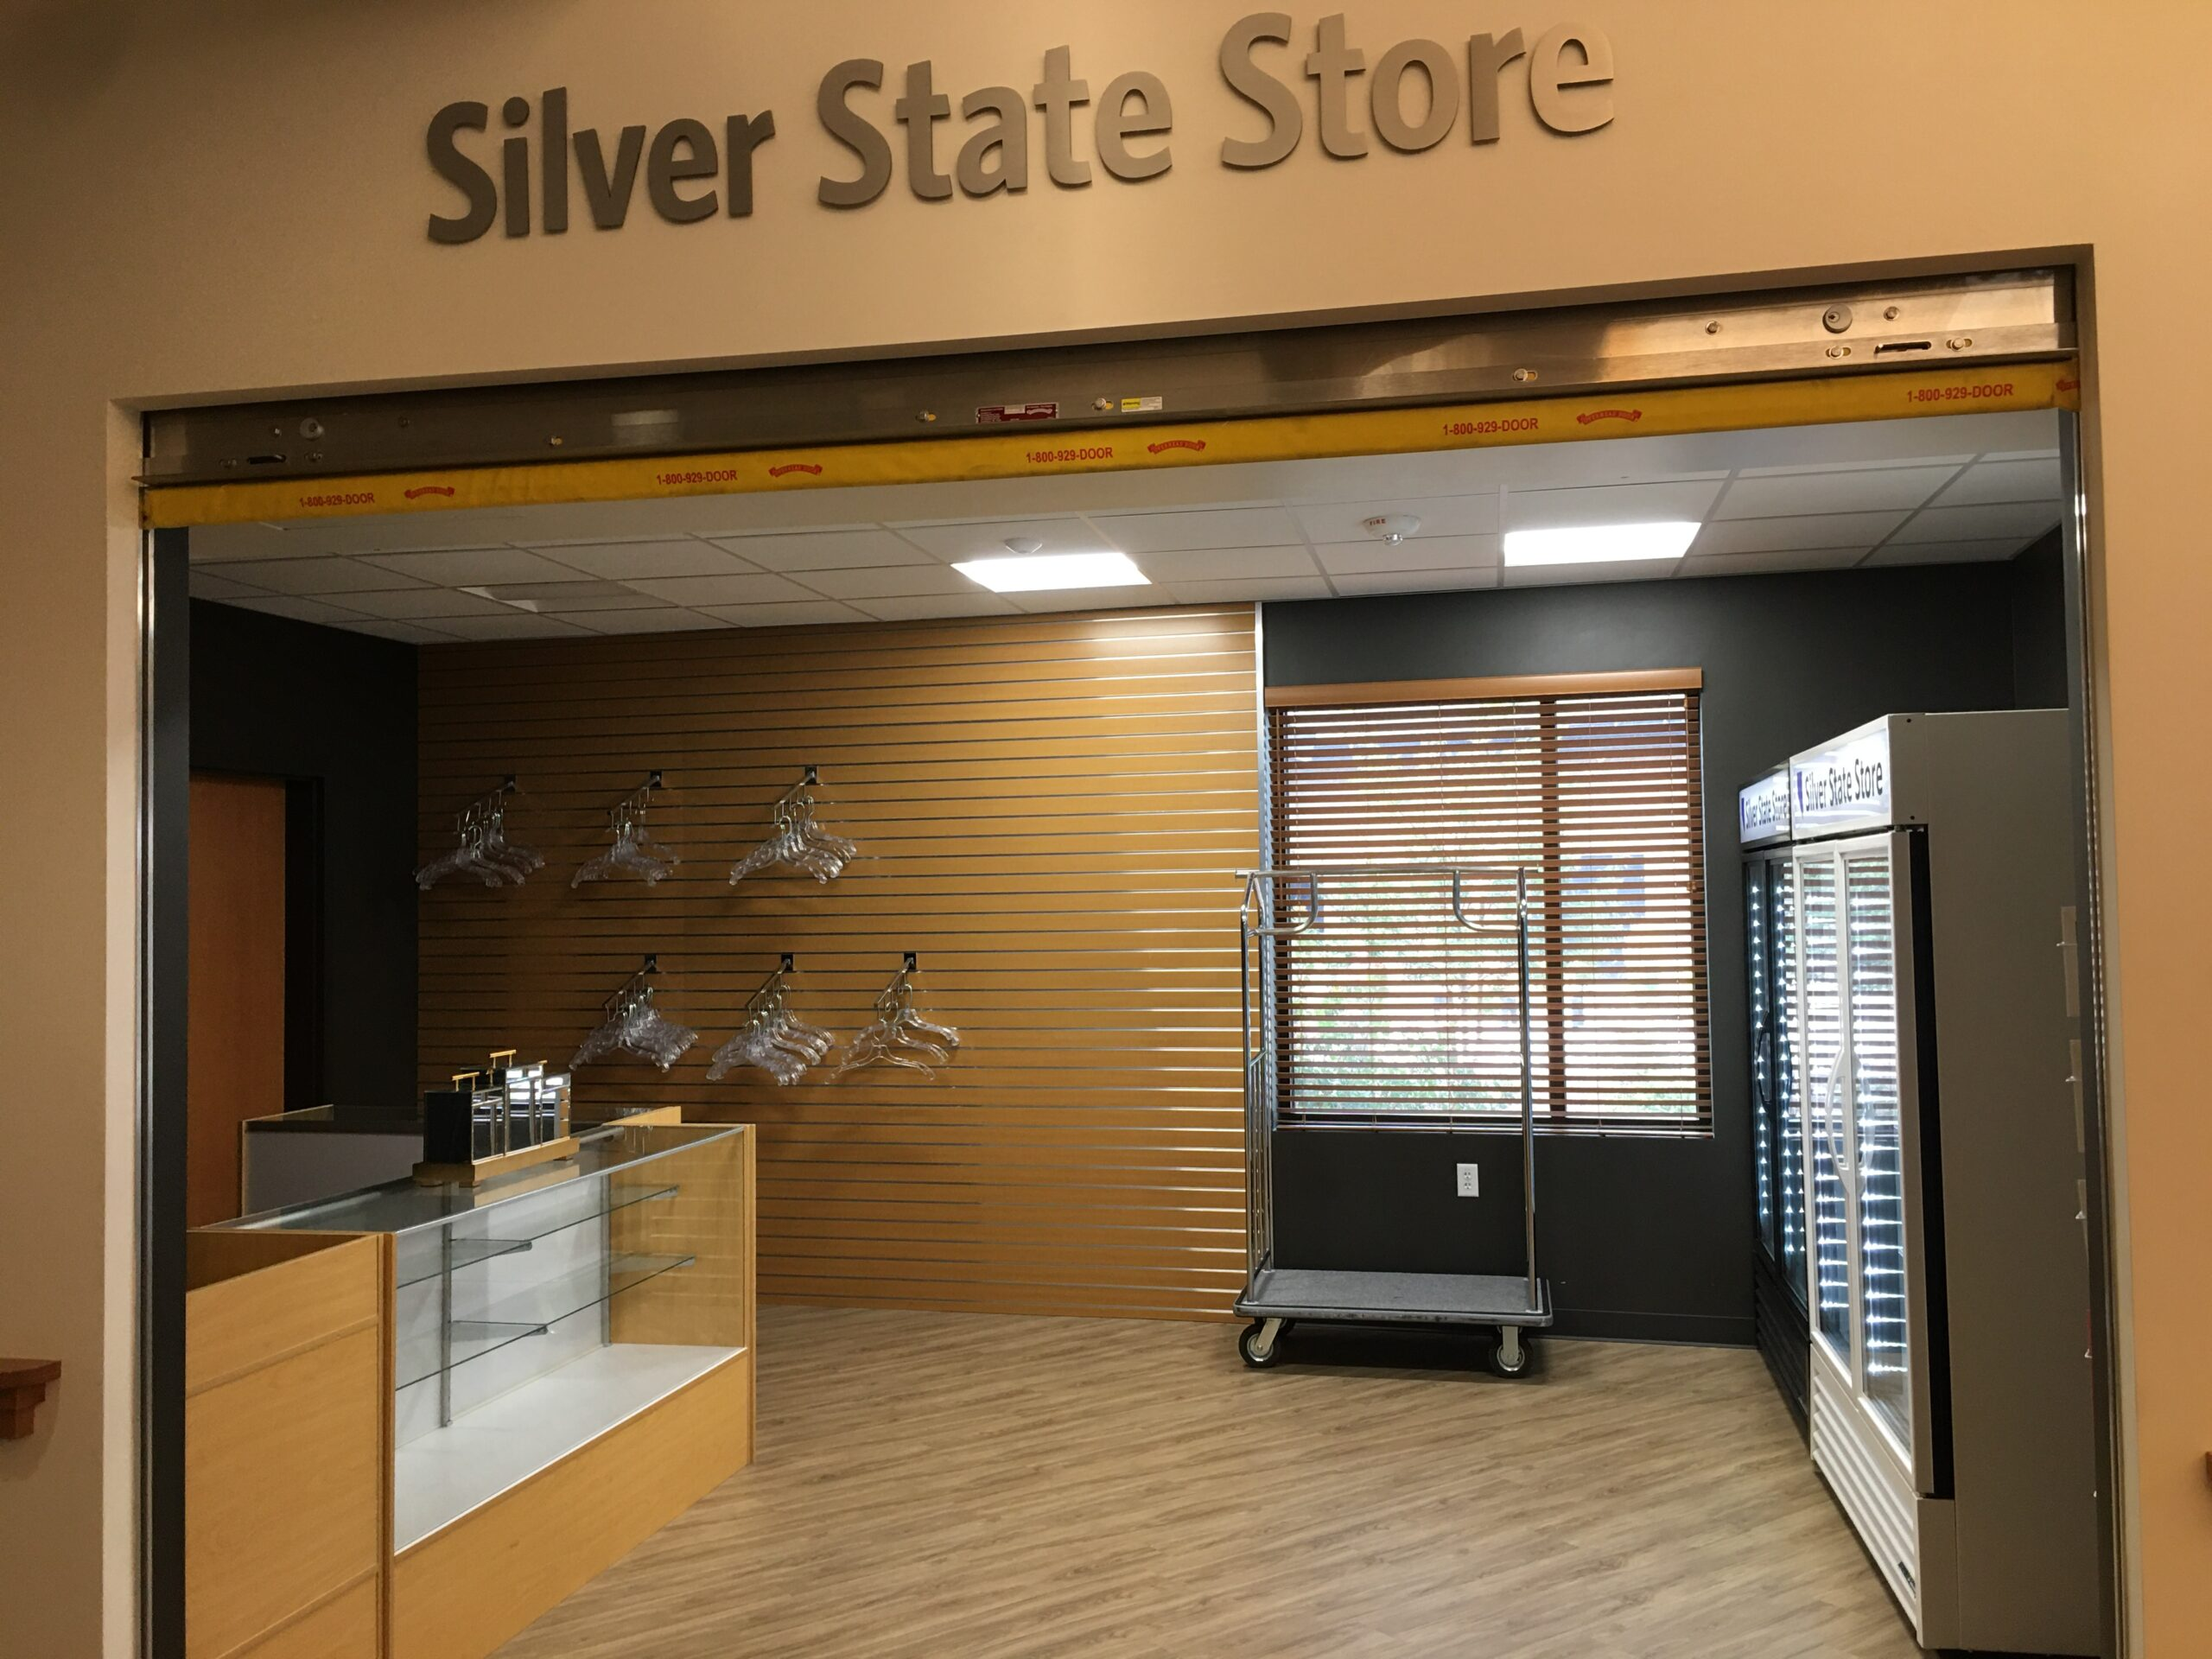 Northern Nevada State Veterans Home Seeking Lead Volunteer for Silver State Store